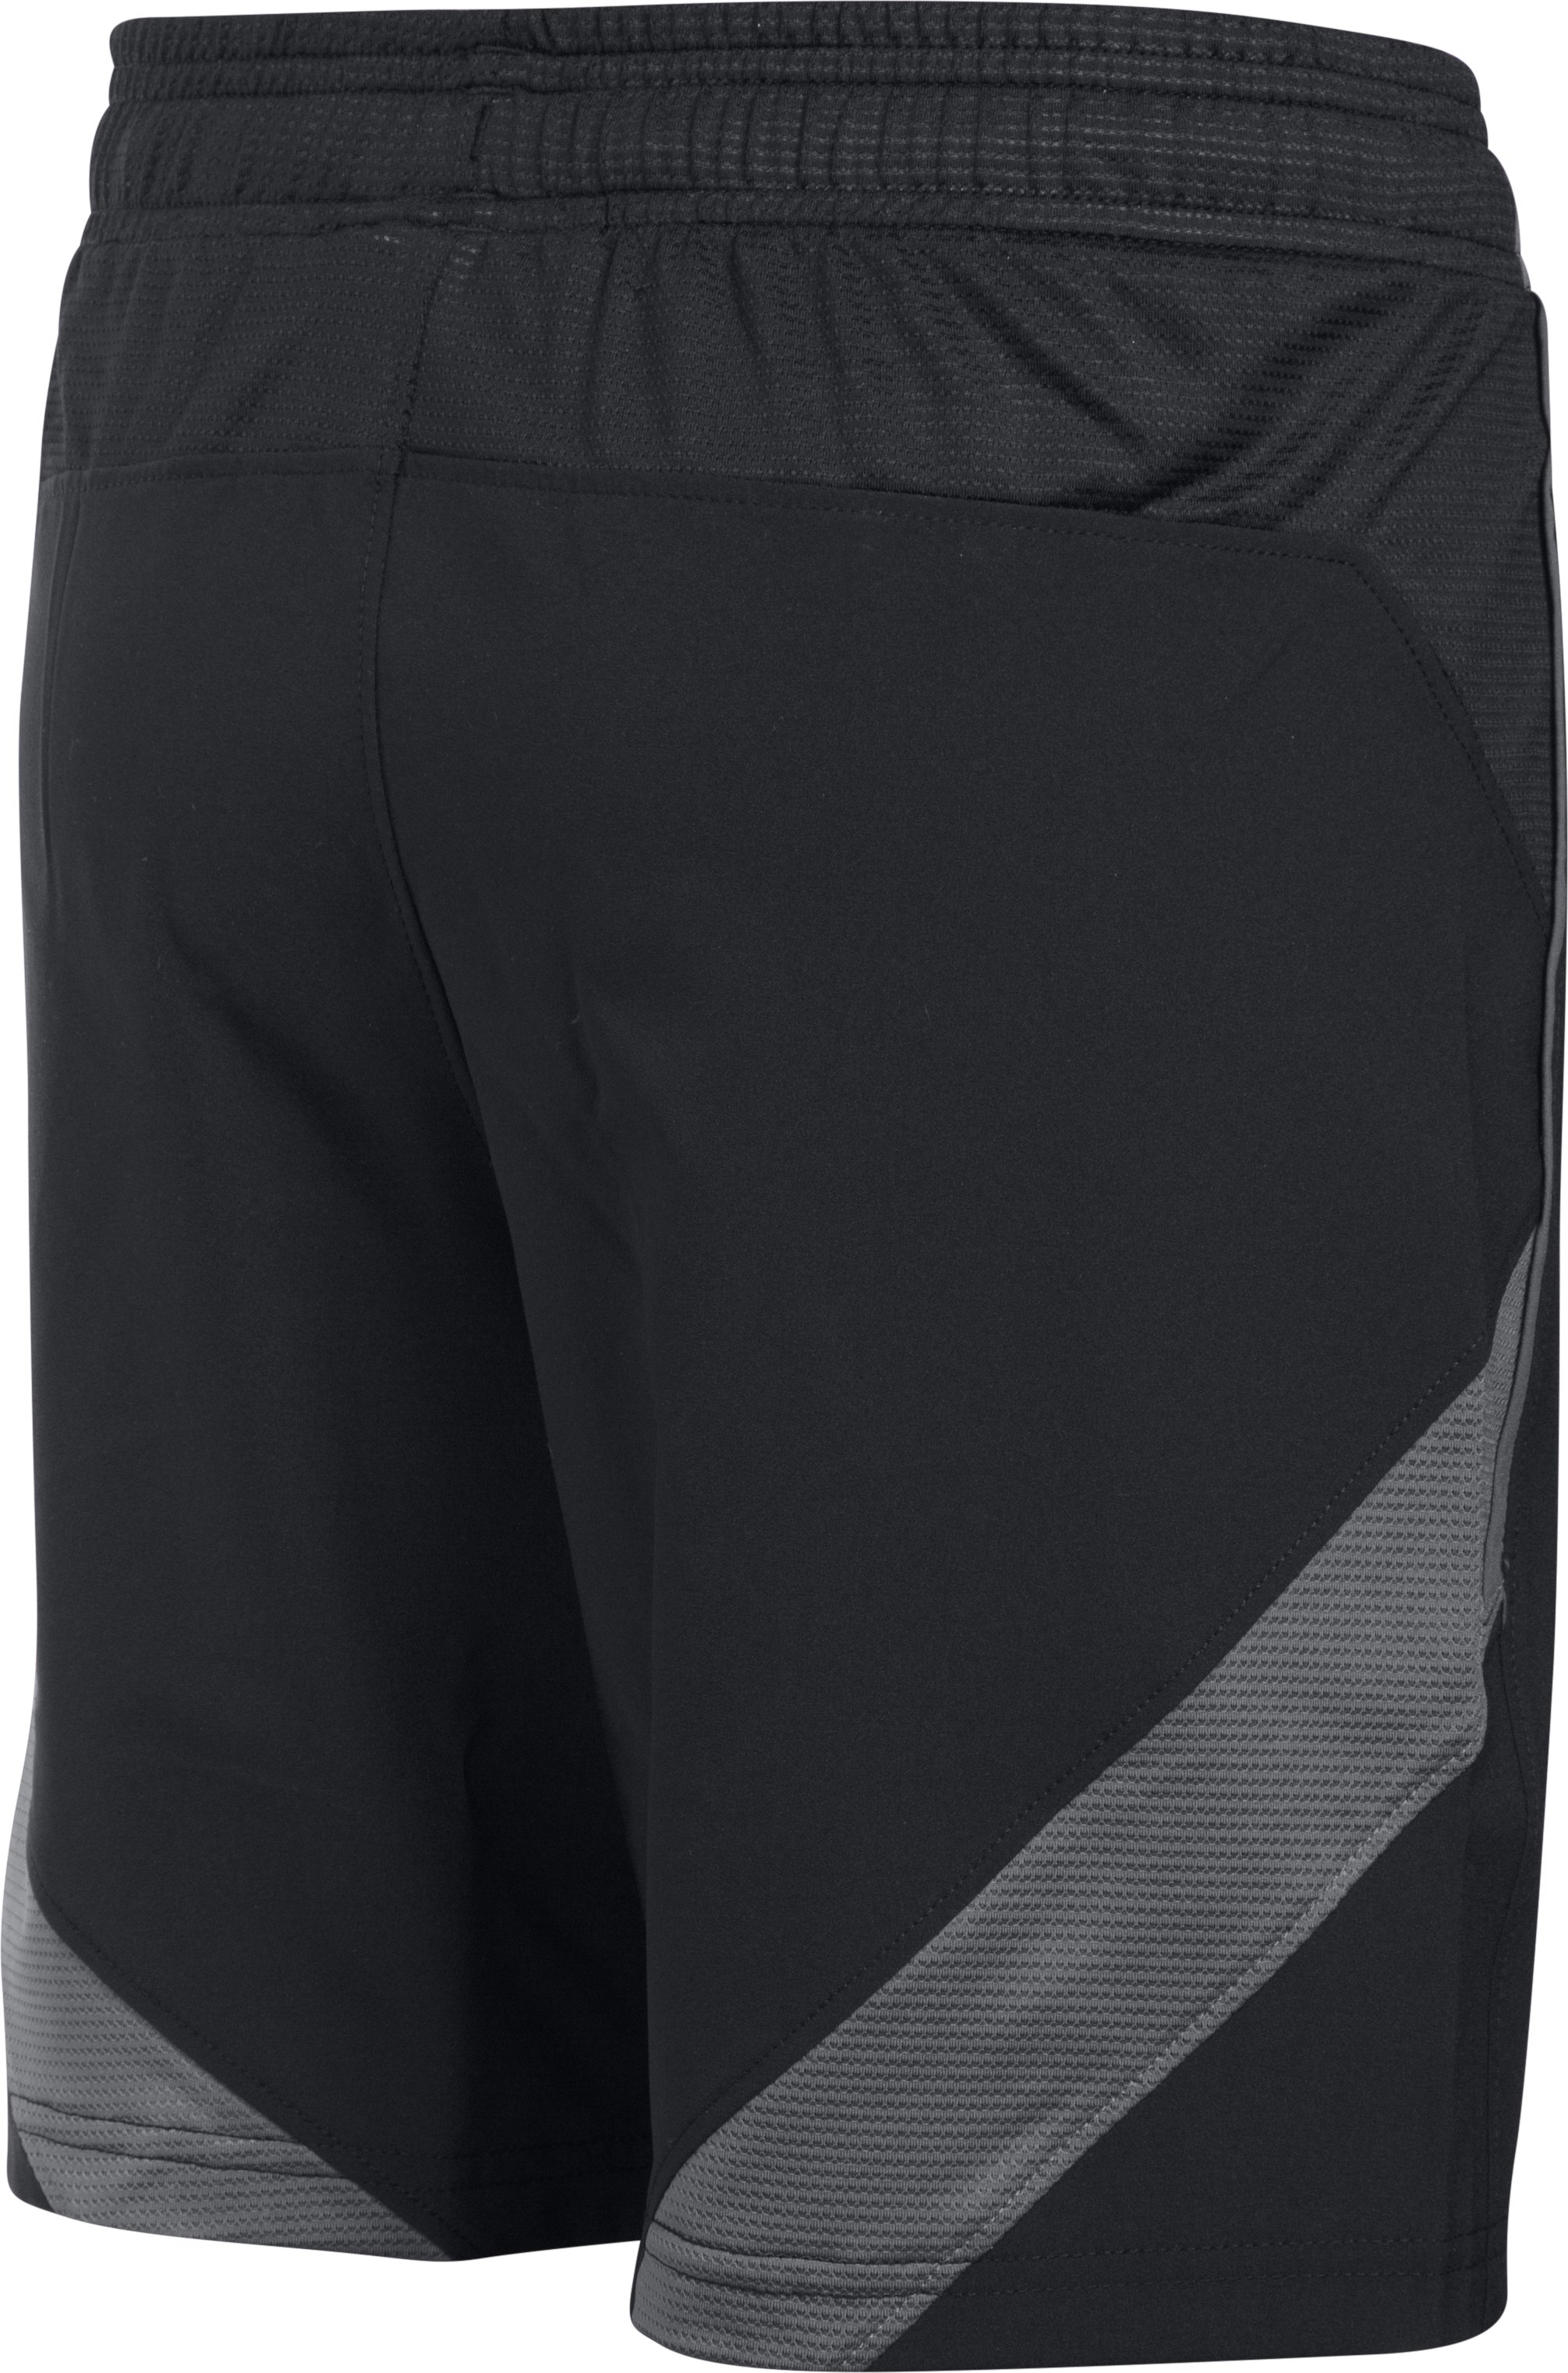 Boys' UA Pitch Woven Shorts, Black , undefined